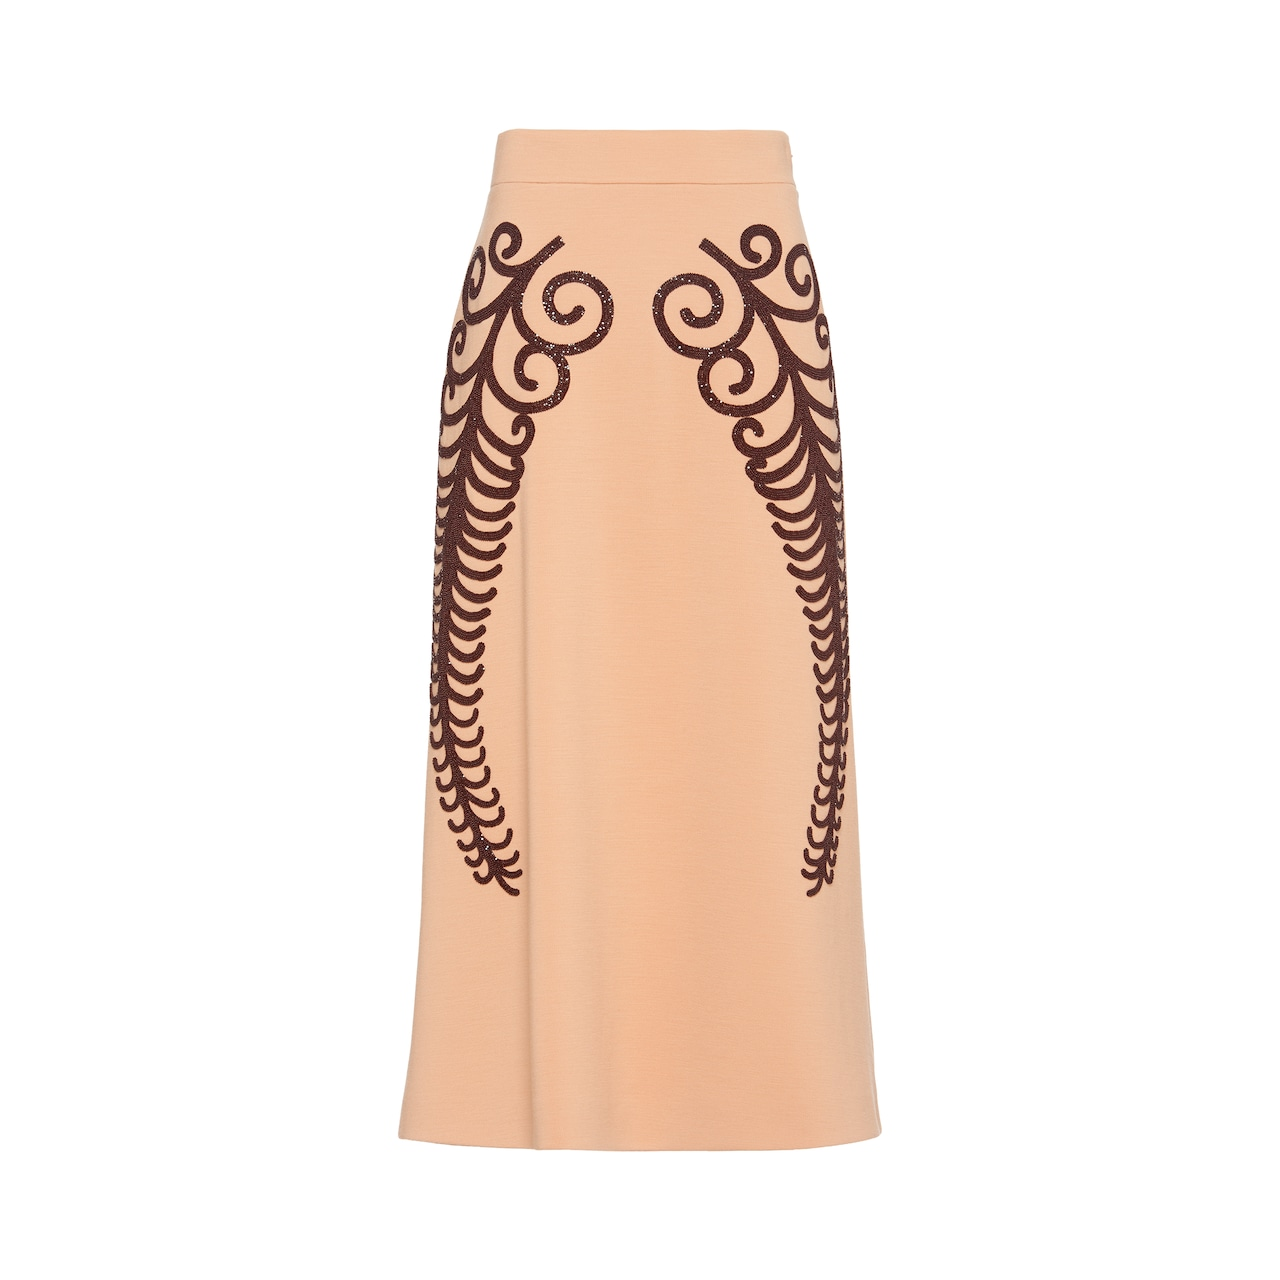 Prada Punto Stoffa knit skirt with beaded embroidery 1